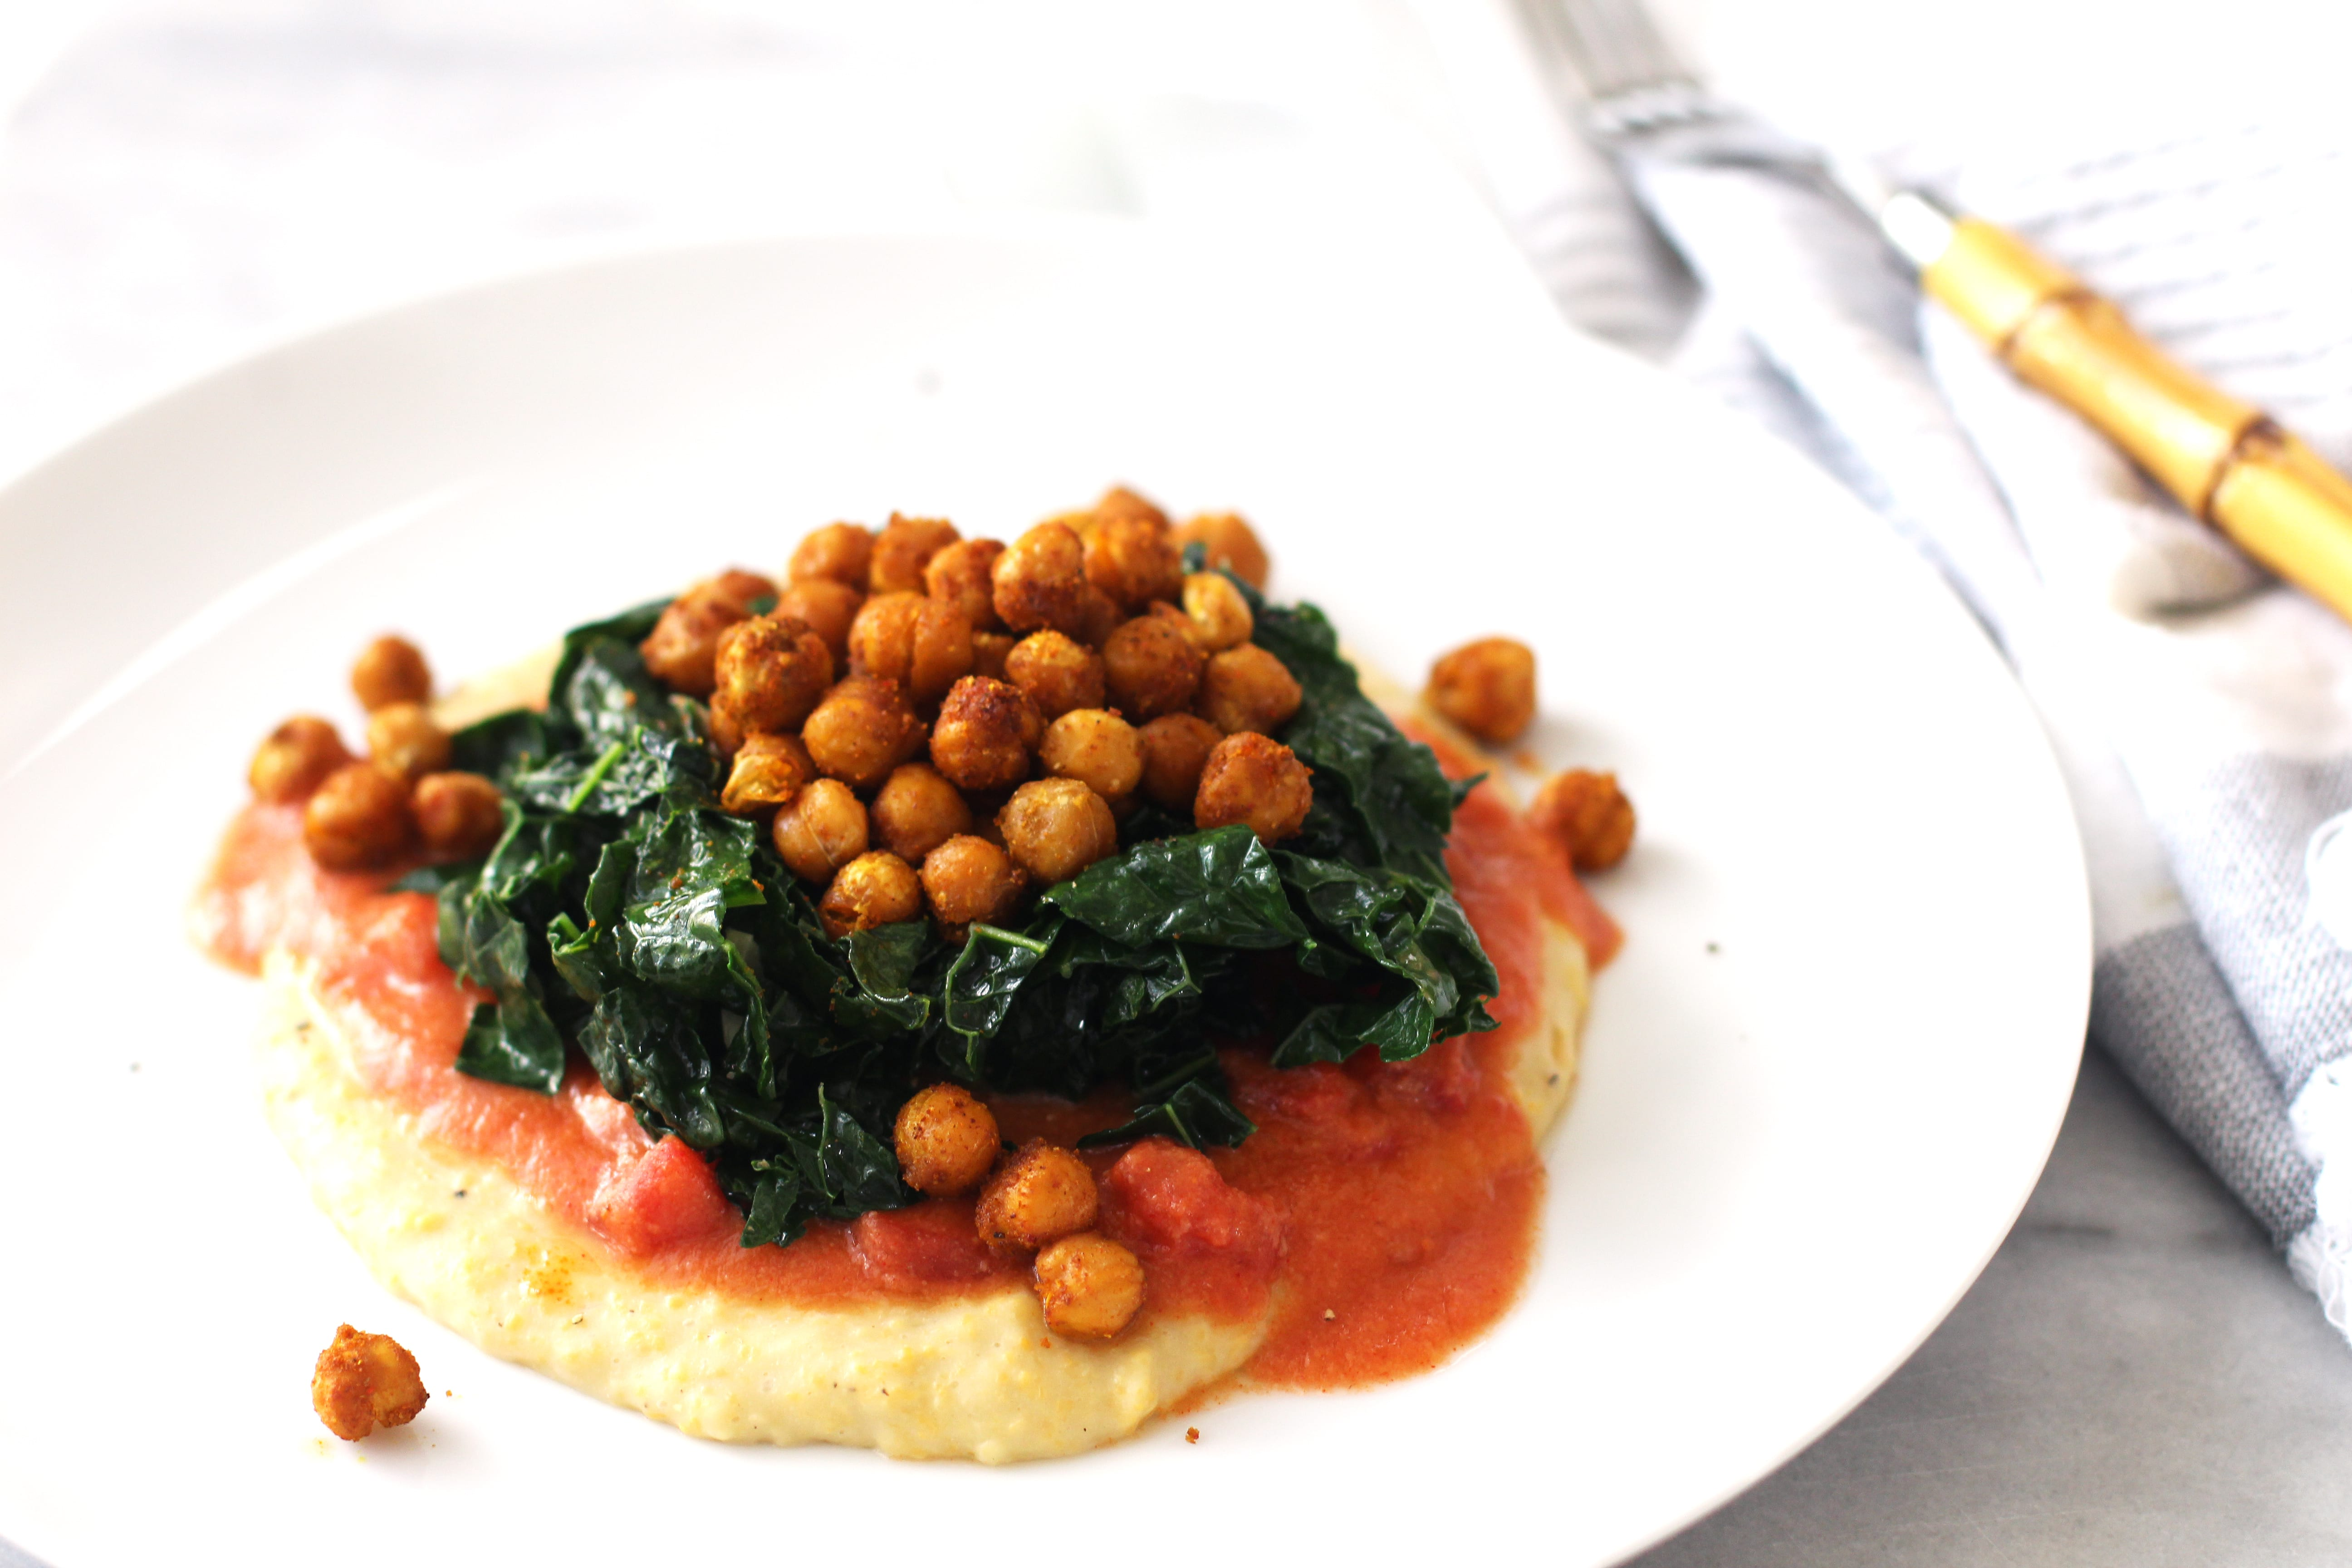 Vegan Creamy Polenta with Garlicky Kale & Roasted Chickpeas